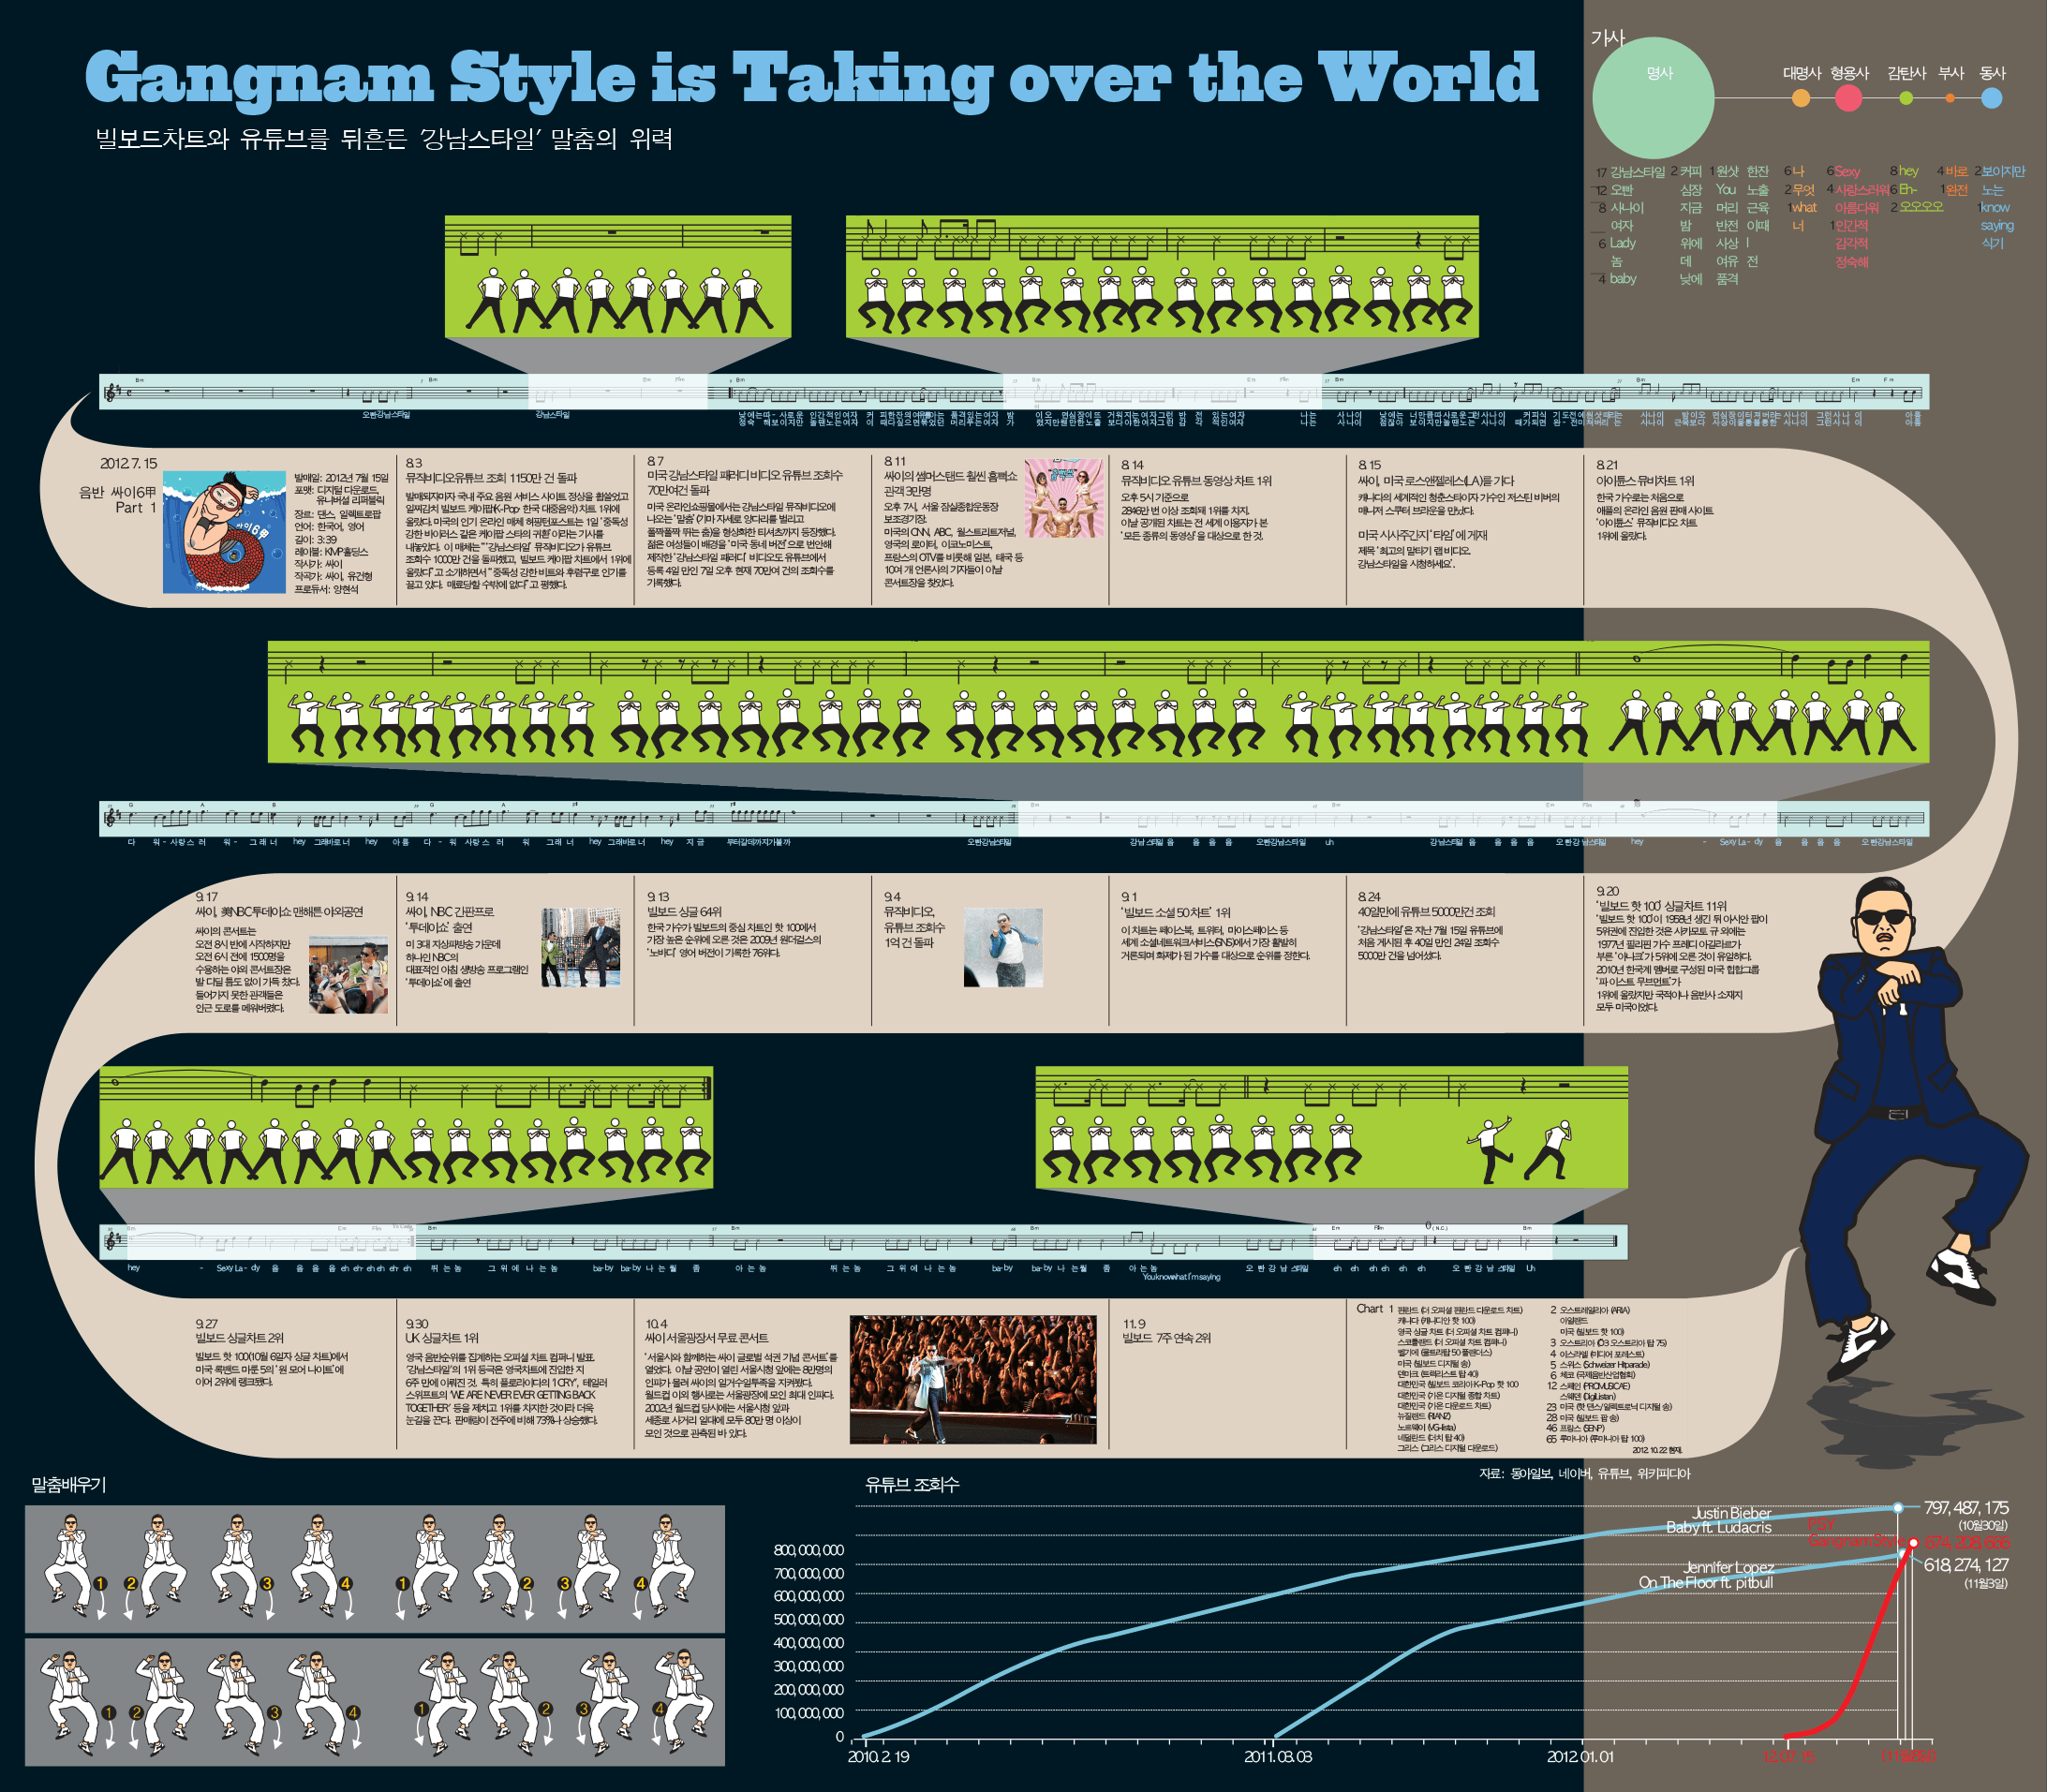 gangnam-style-is-taking-over-the-world_50c2bfae2944a